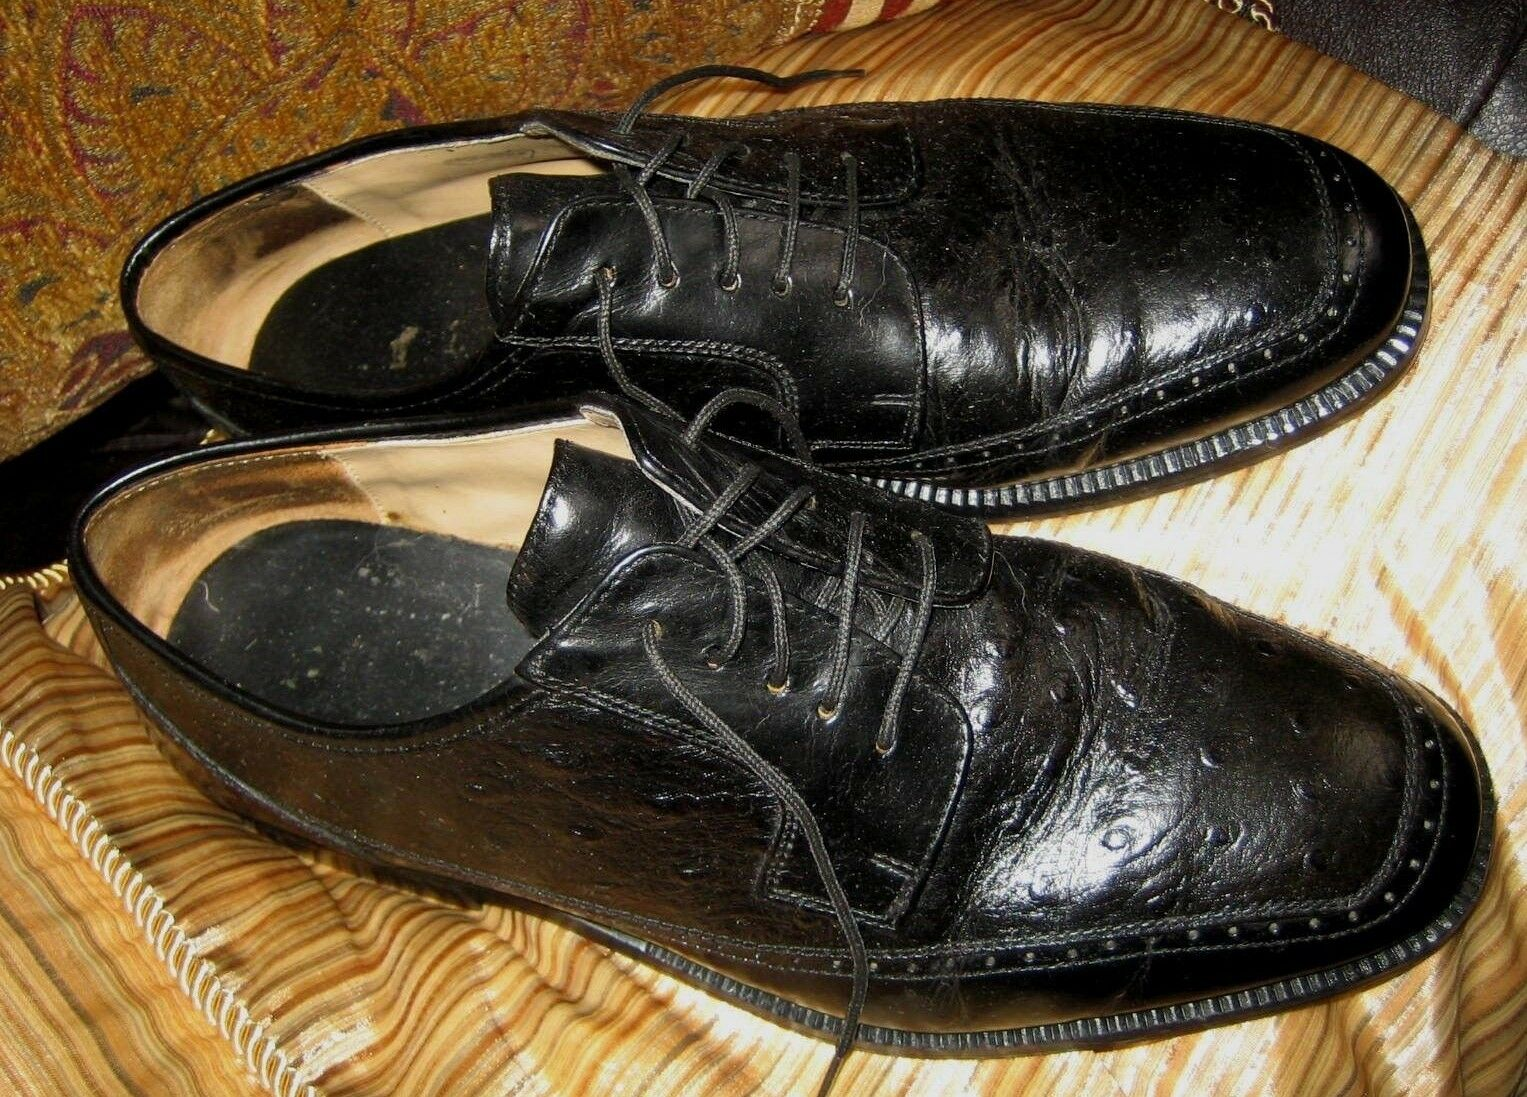 OSTRICH LEATHER OXFORDS schuhe IN IN IN schwarz HANDMADE IN ITALY 9.5 W GREAT QUALITY b06f41